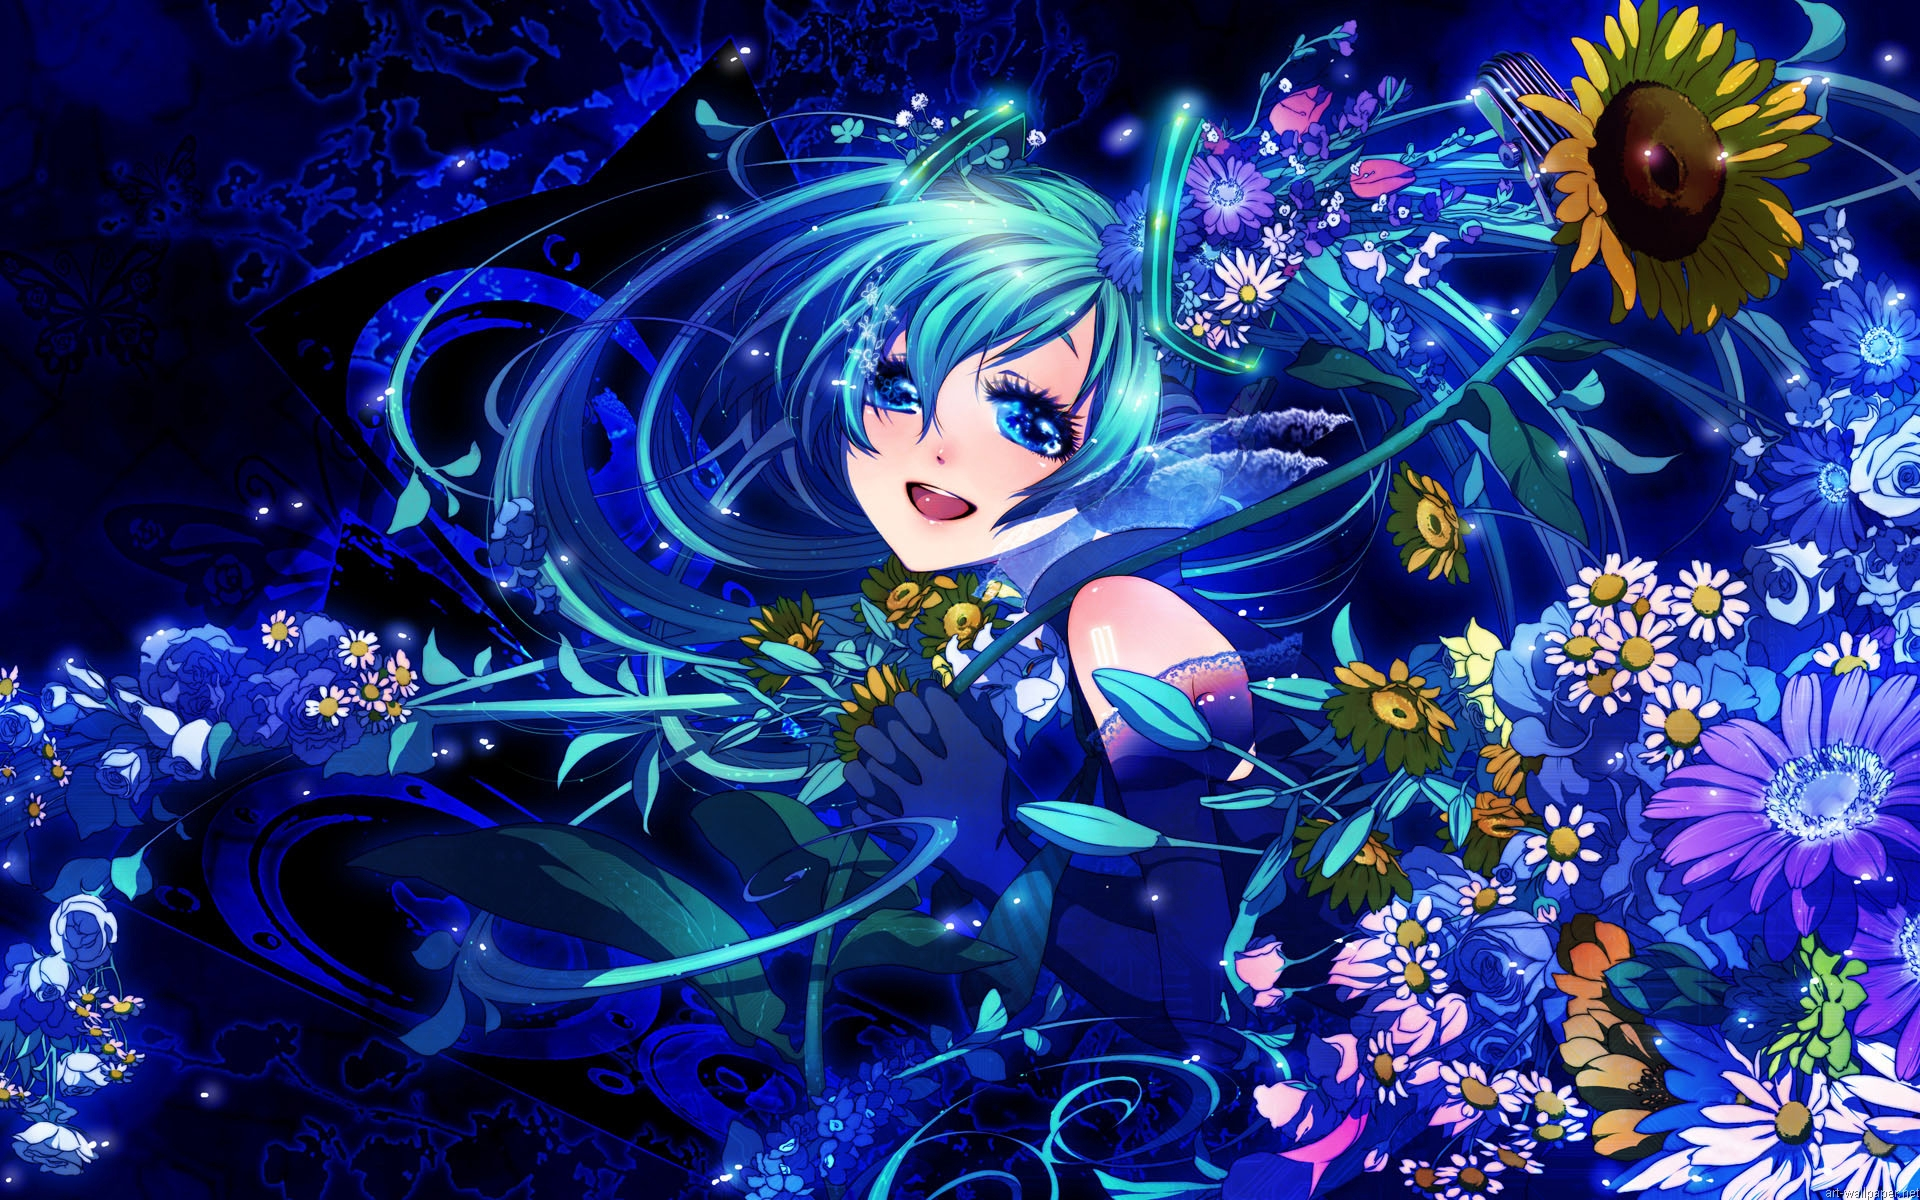 anime hd wallpaper desktop backgrounds 152 1920x1200